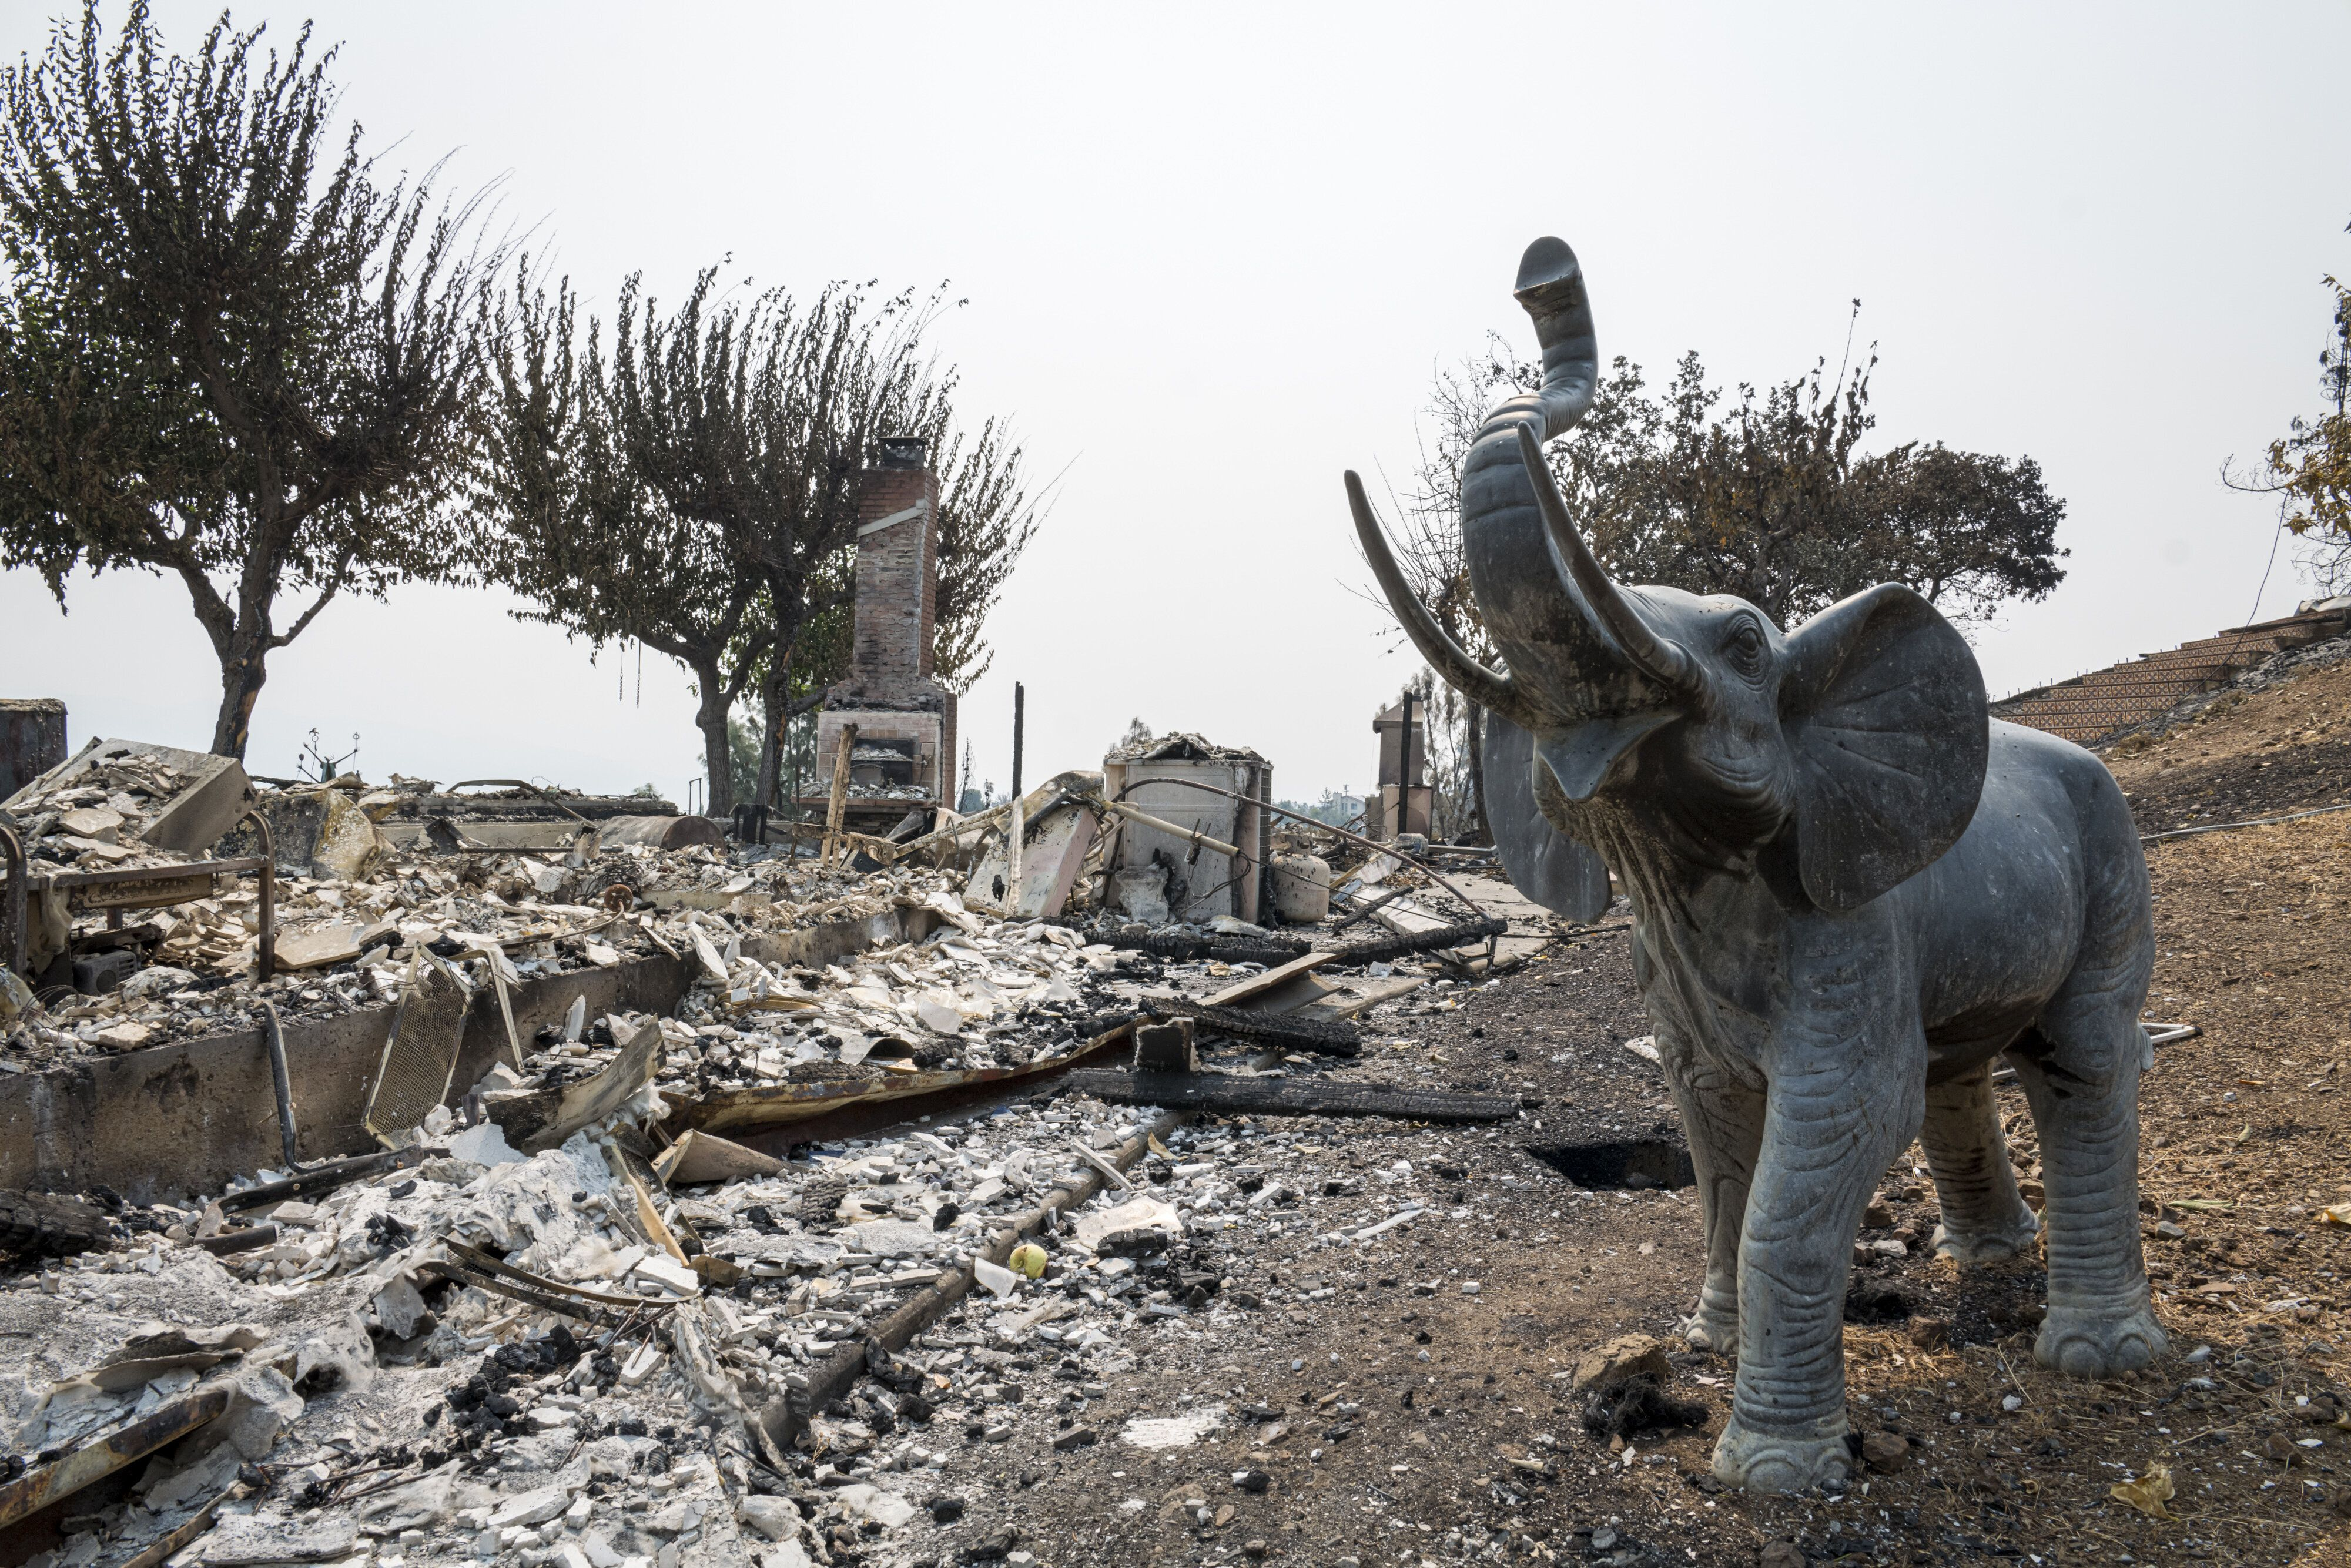 A home destroyed by the LNU Lightning Complex fire in Napa County, California, pictured on Aug. 25. More than 7,000 blazes ha